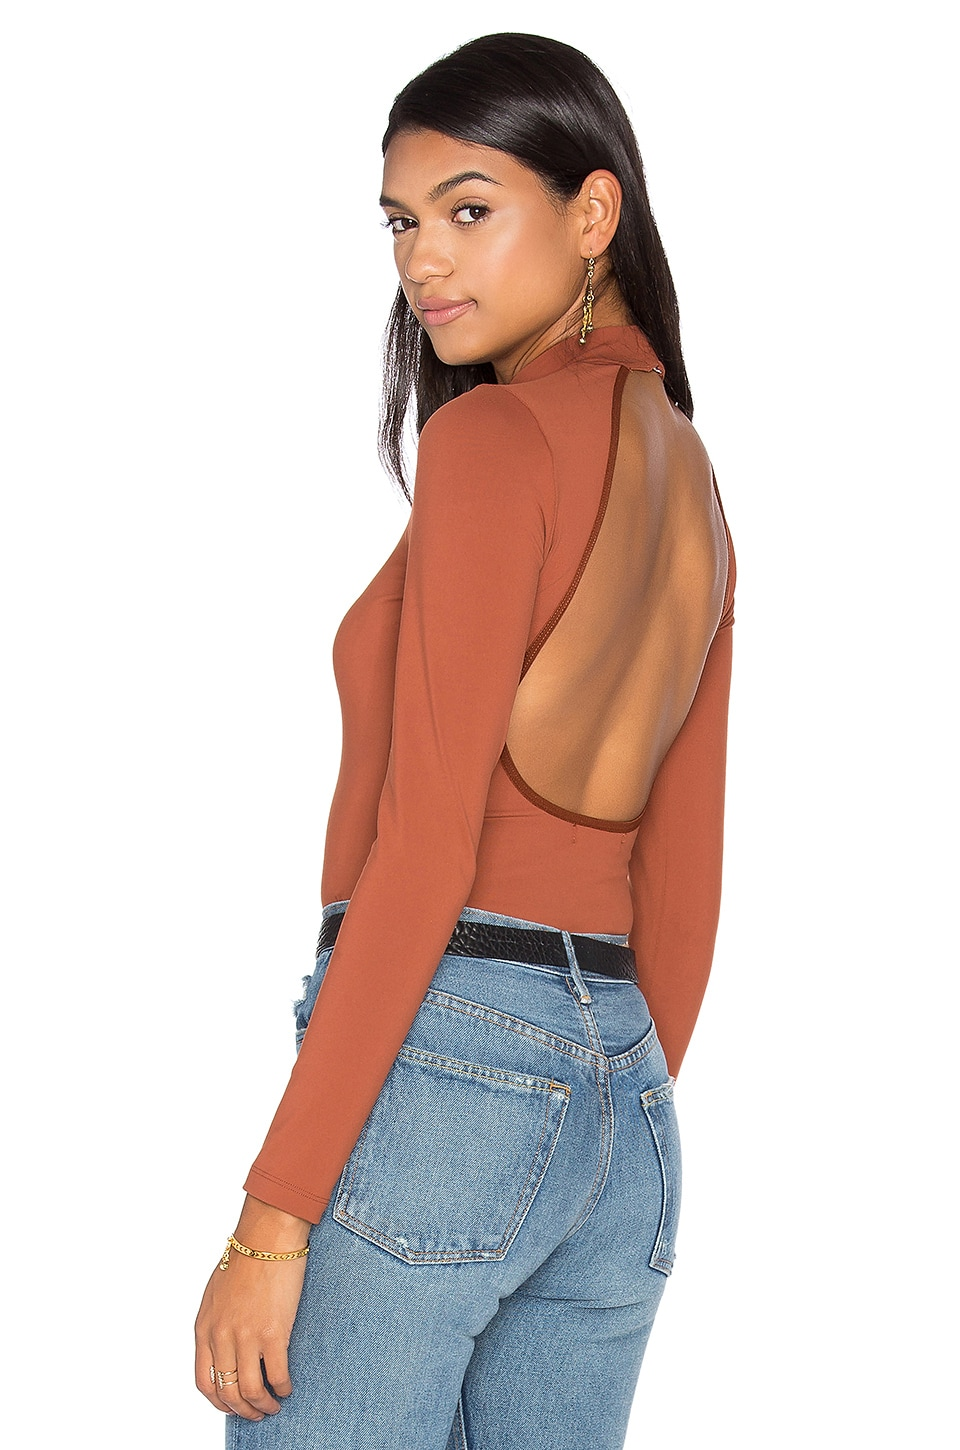 FLYNN SKYE Cody Bodysuit in Brick